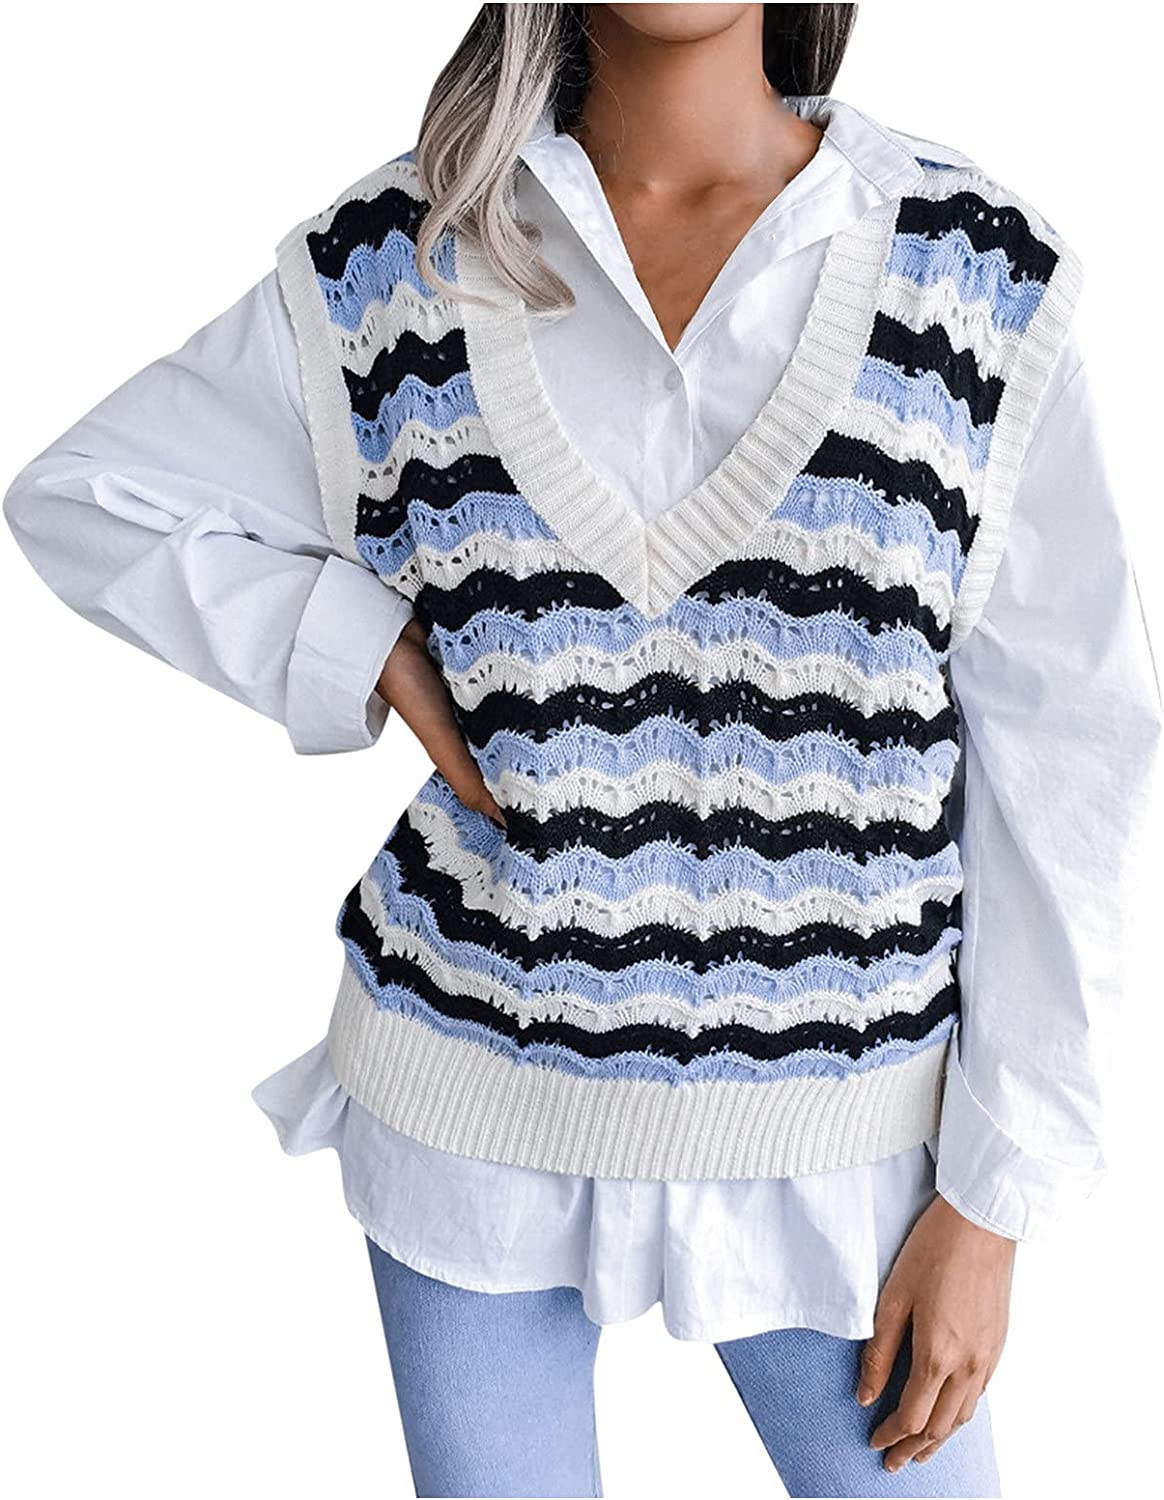 Women's Basic V Neck Sleeveless Pullover Knit Sweater Vest Striped Vintage Print Casual Knitted Tank Top Loose Jumper Tops